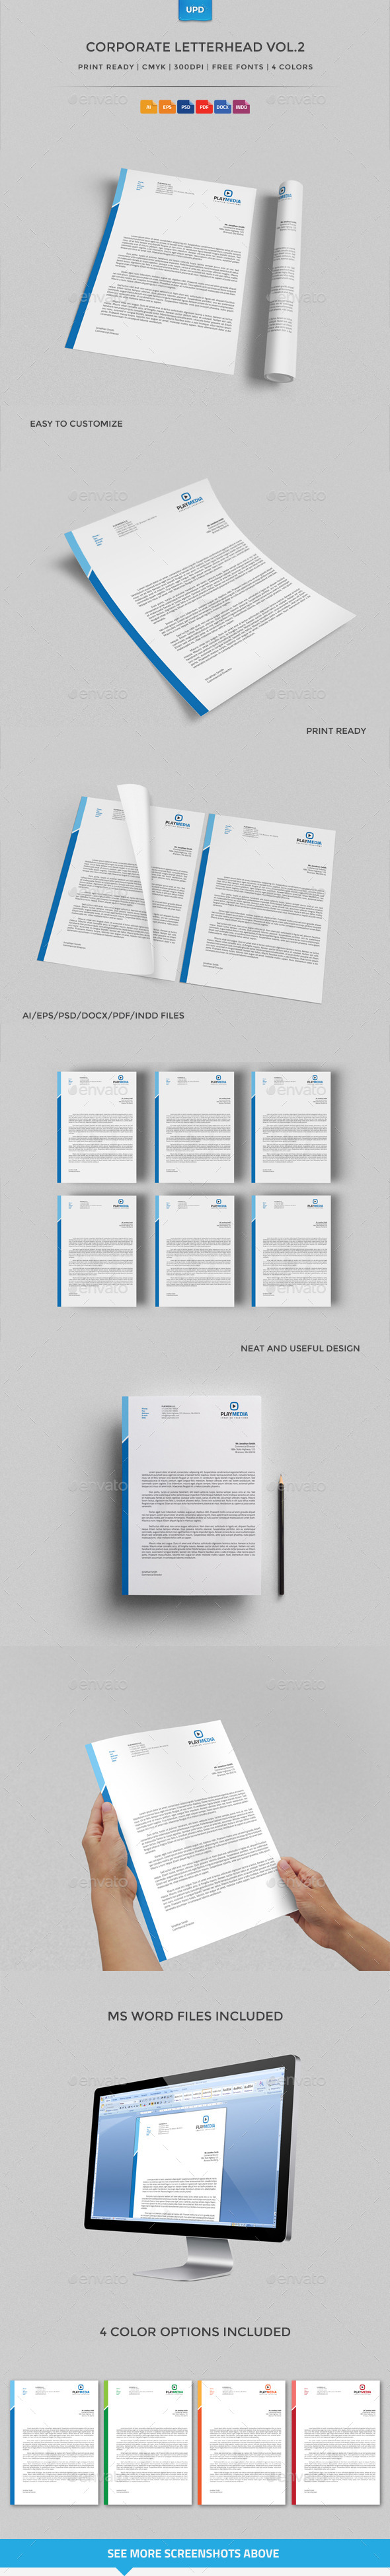 Corporate Letterhead Vol2 With MS Word Doc